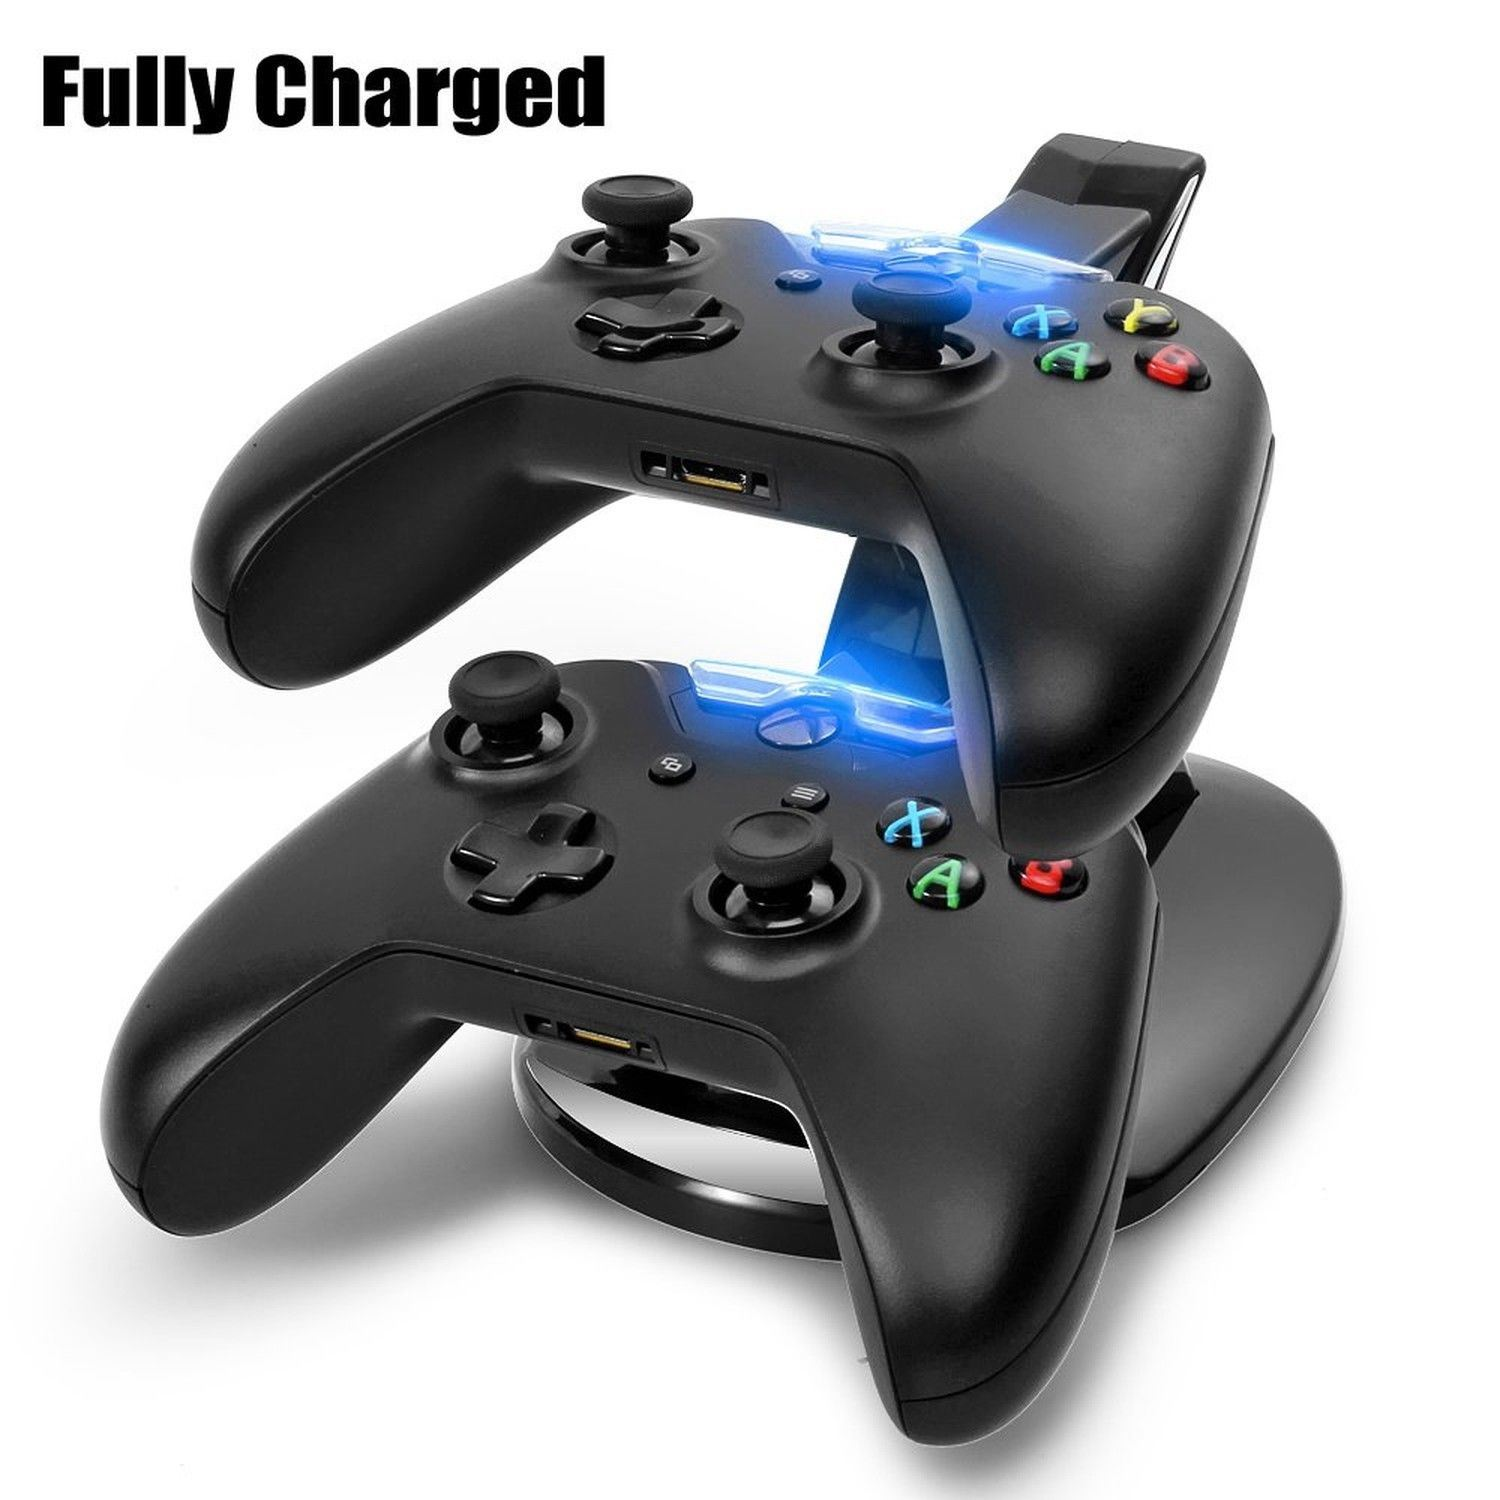 USB LED Fast Charging Stand Dock Station Dual for xBox One